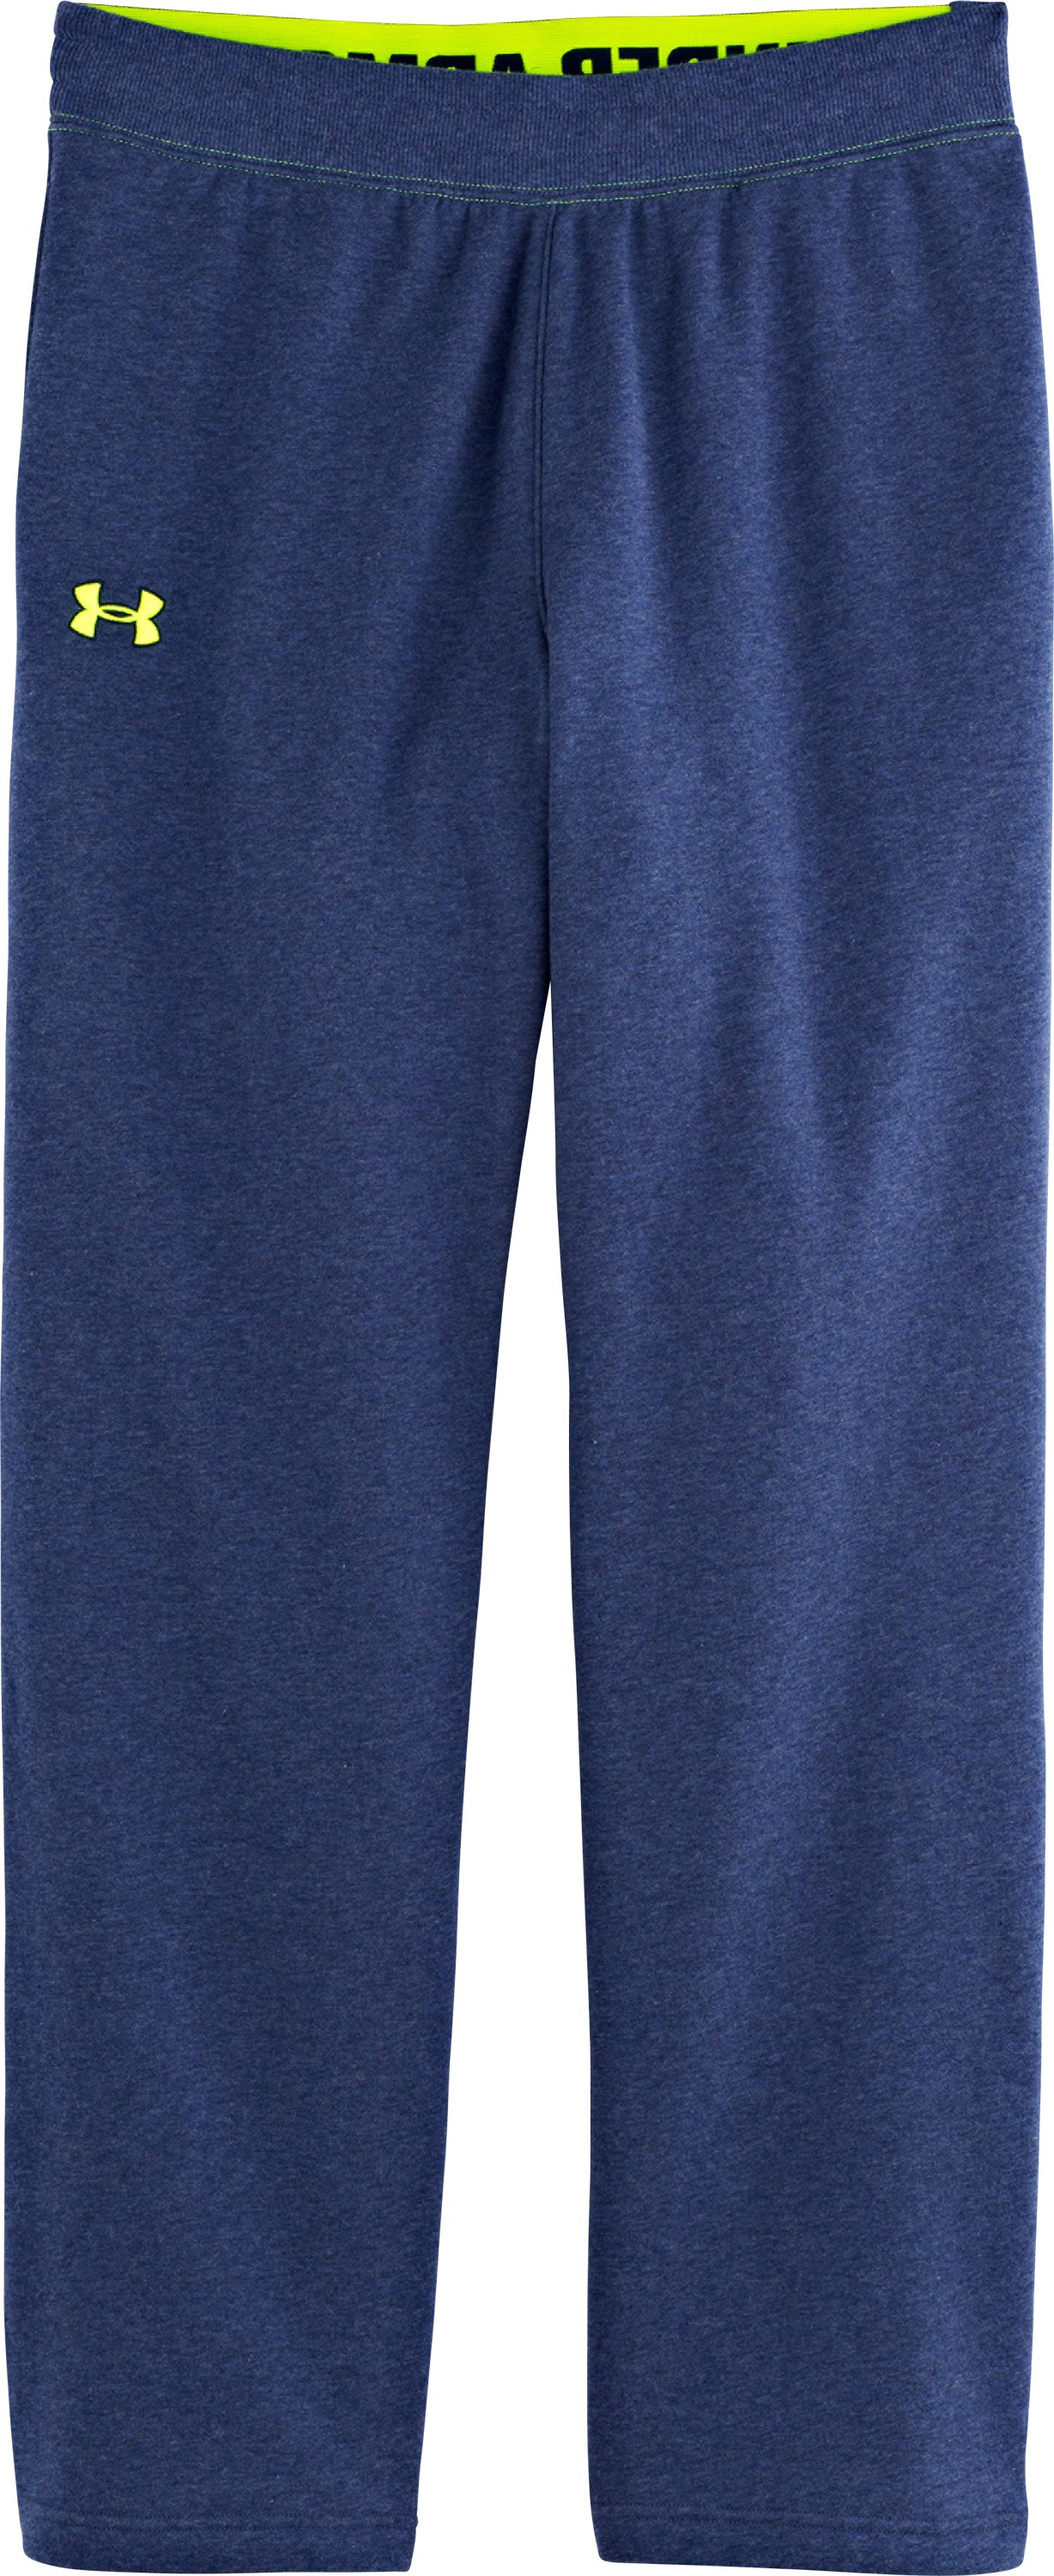 Men's Charged Cotton® Storm Transit Pants, HEATHER JEAN, Laydown